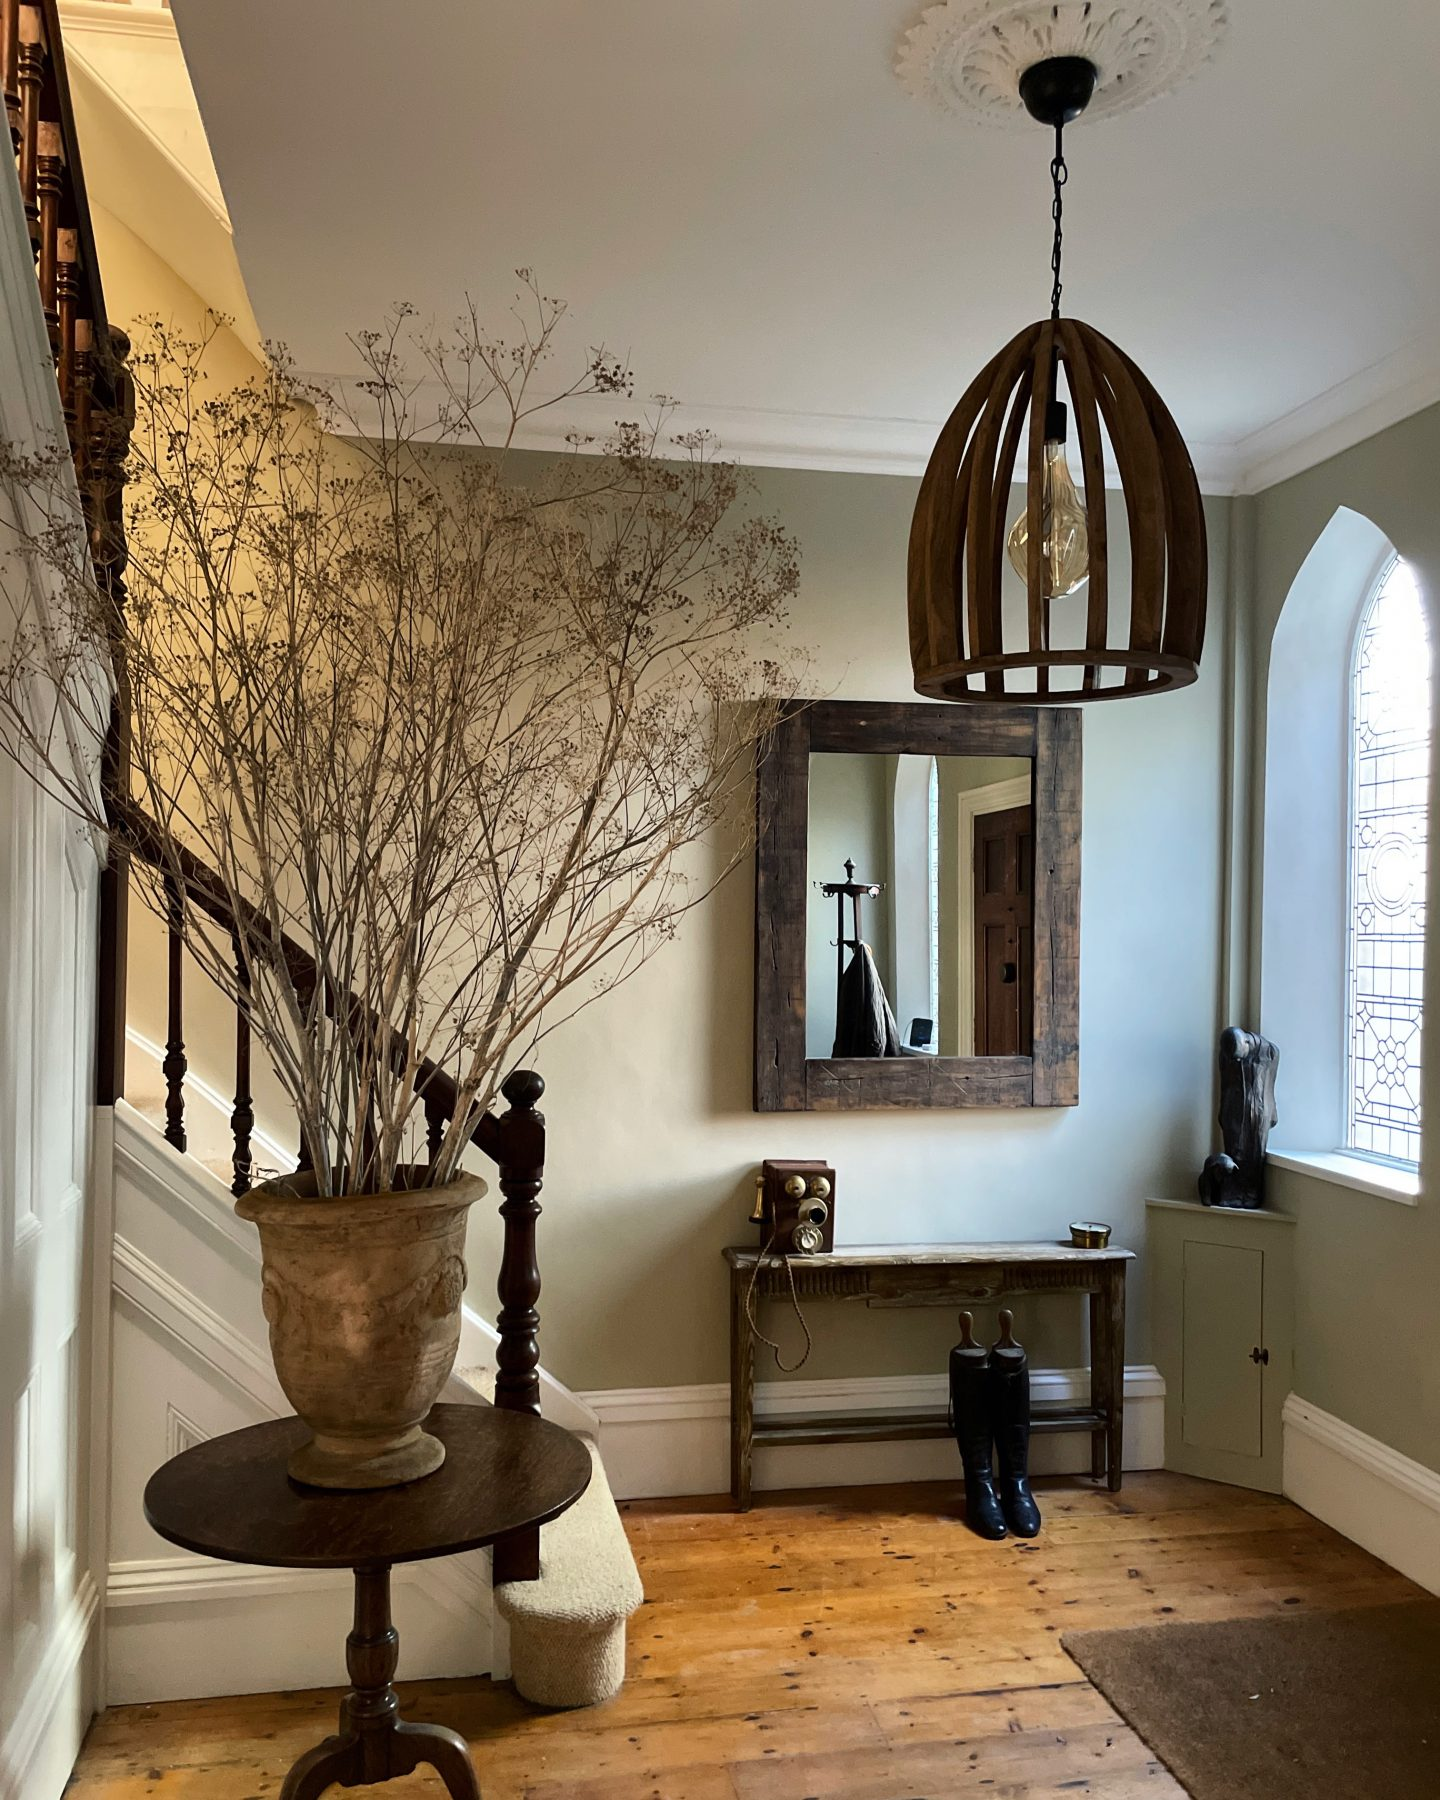 Hallway with arched windows and a large urn with cow parsnip in it.